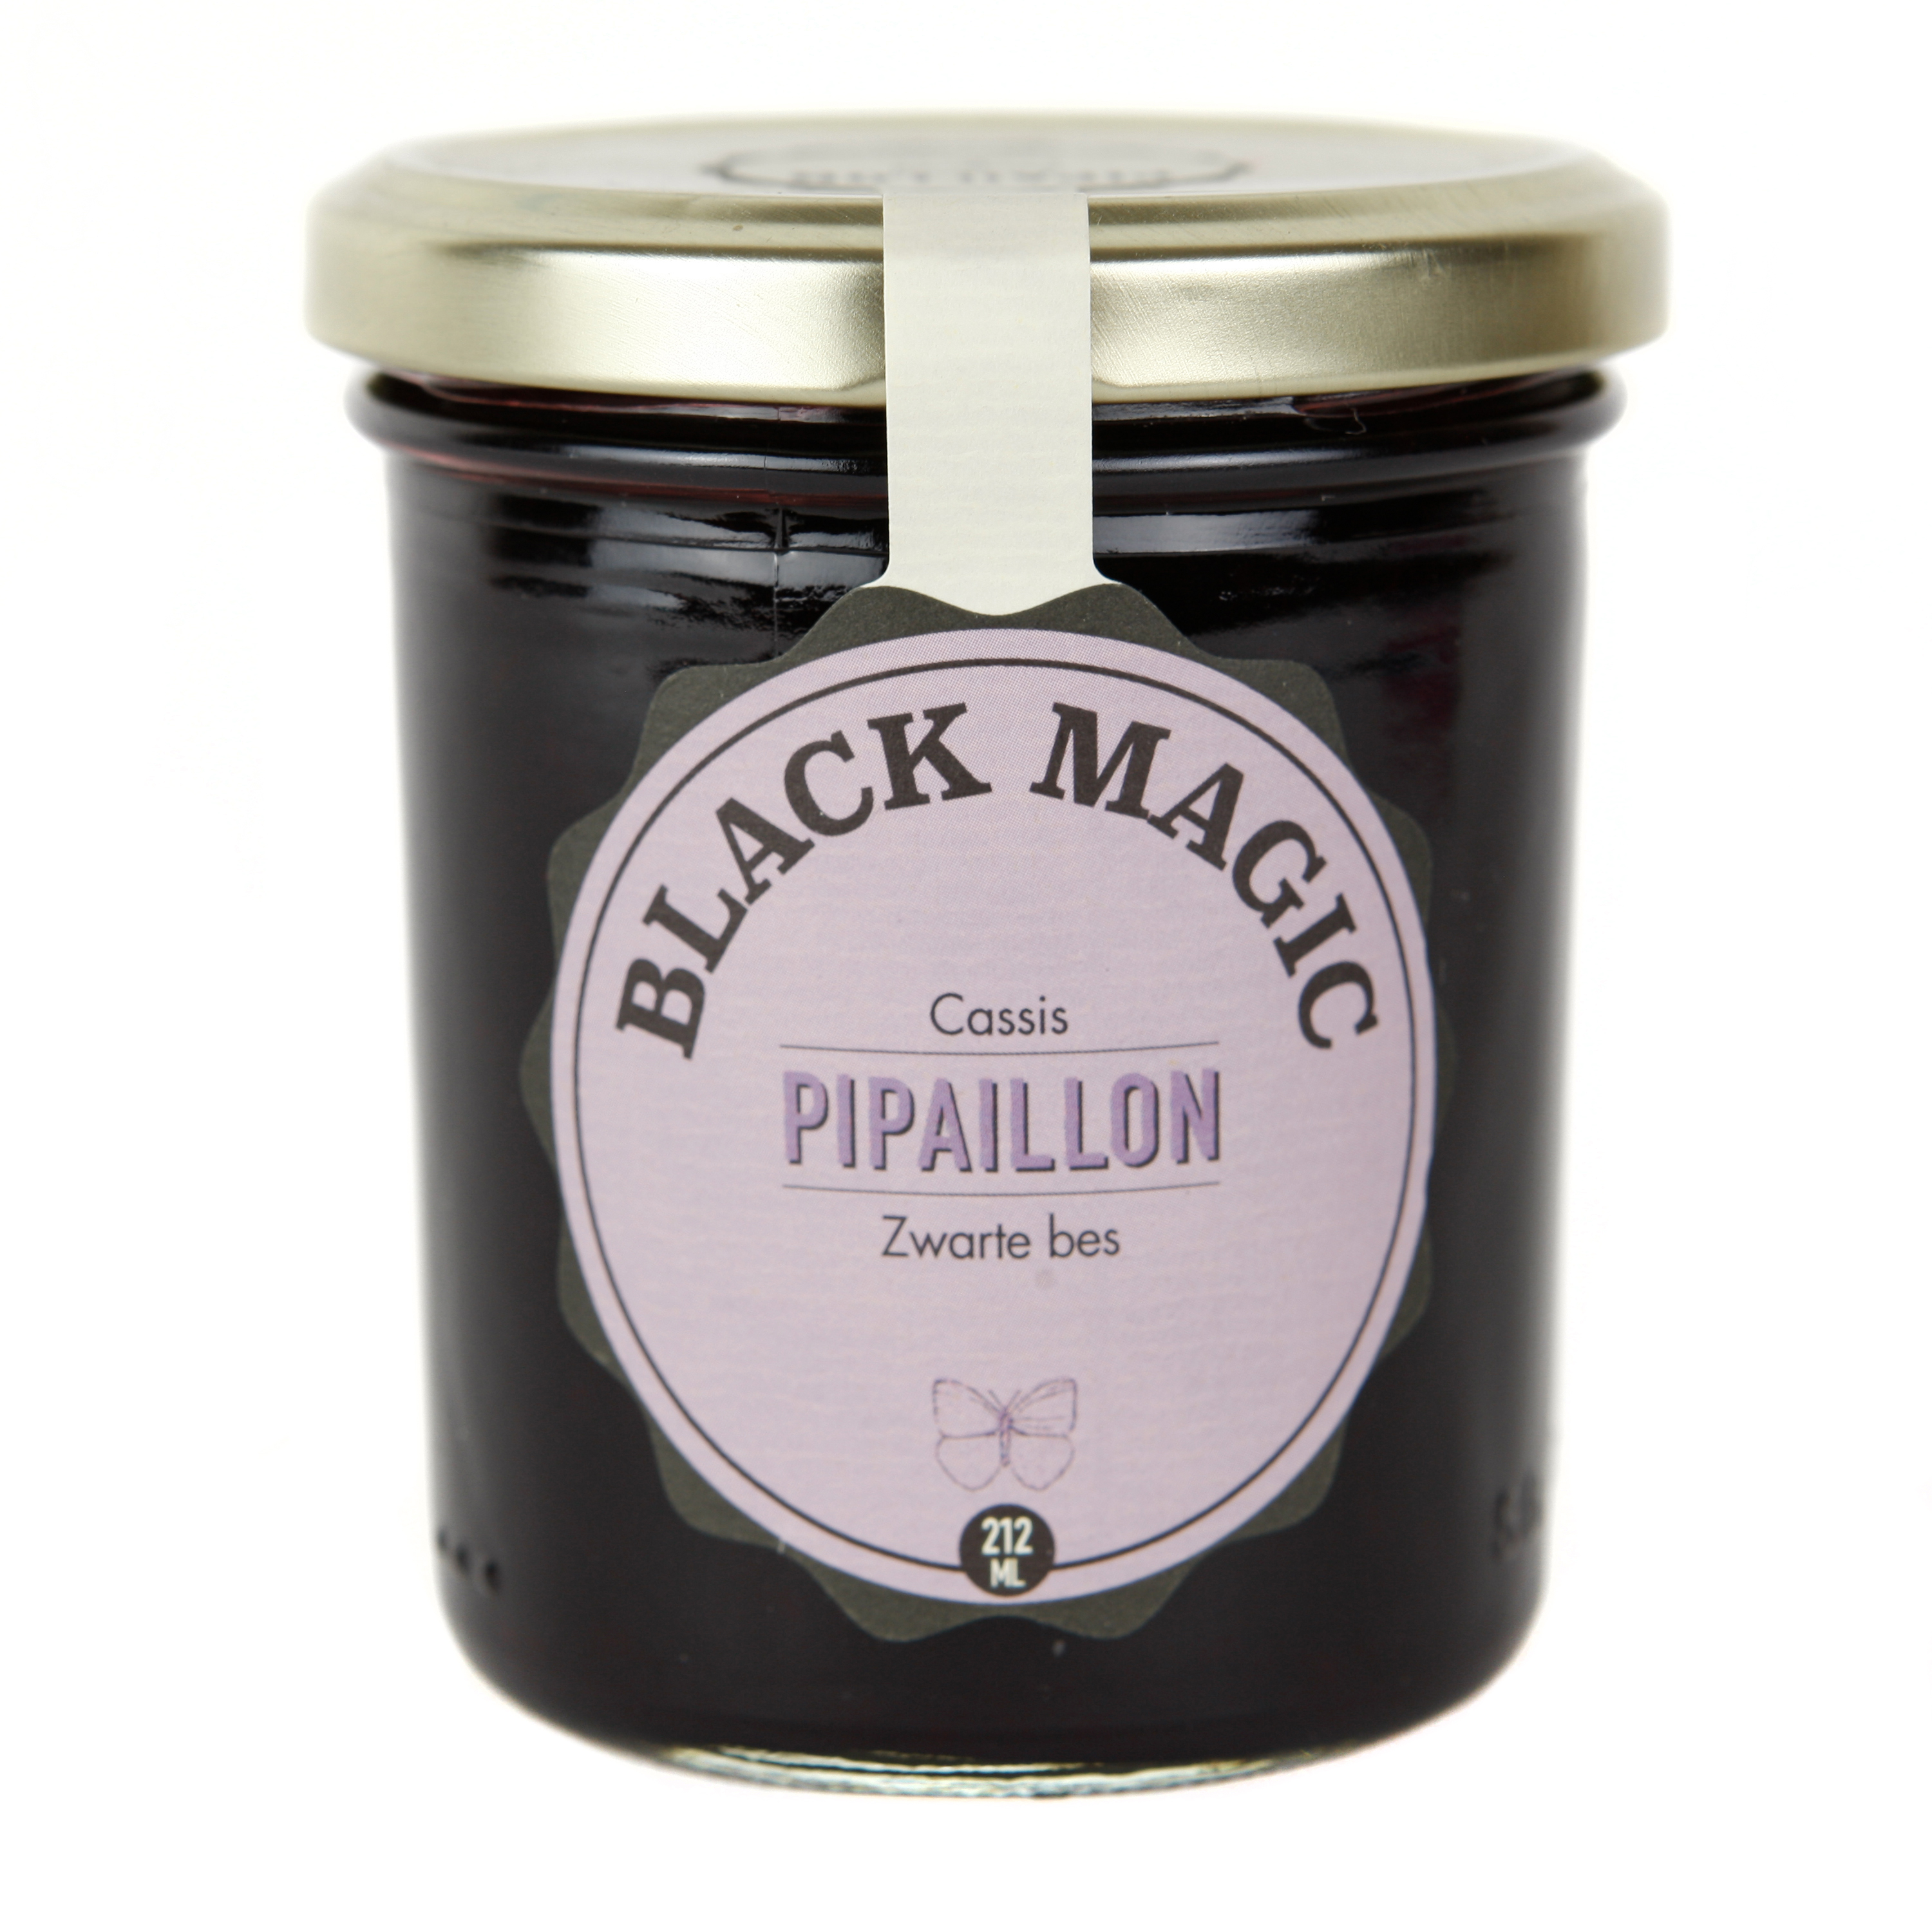 Confiture Black Magic - Cassis BIO, Pipaillon (212 ml)